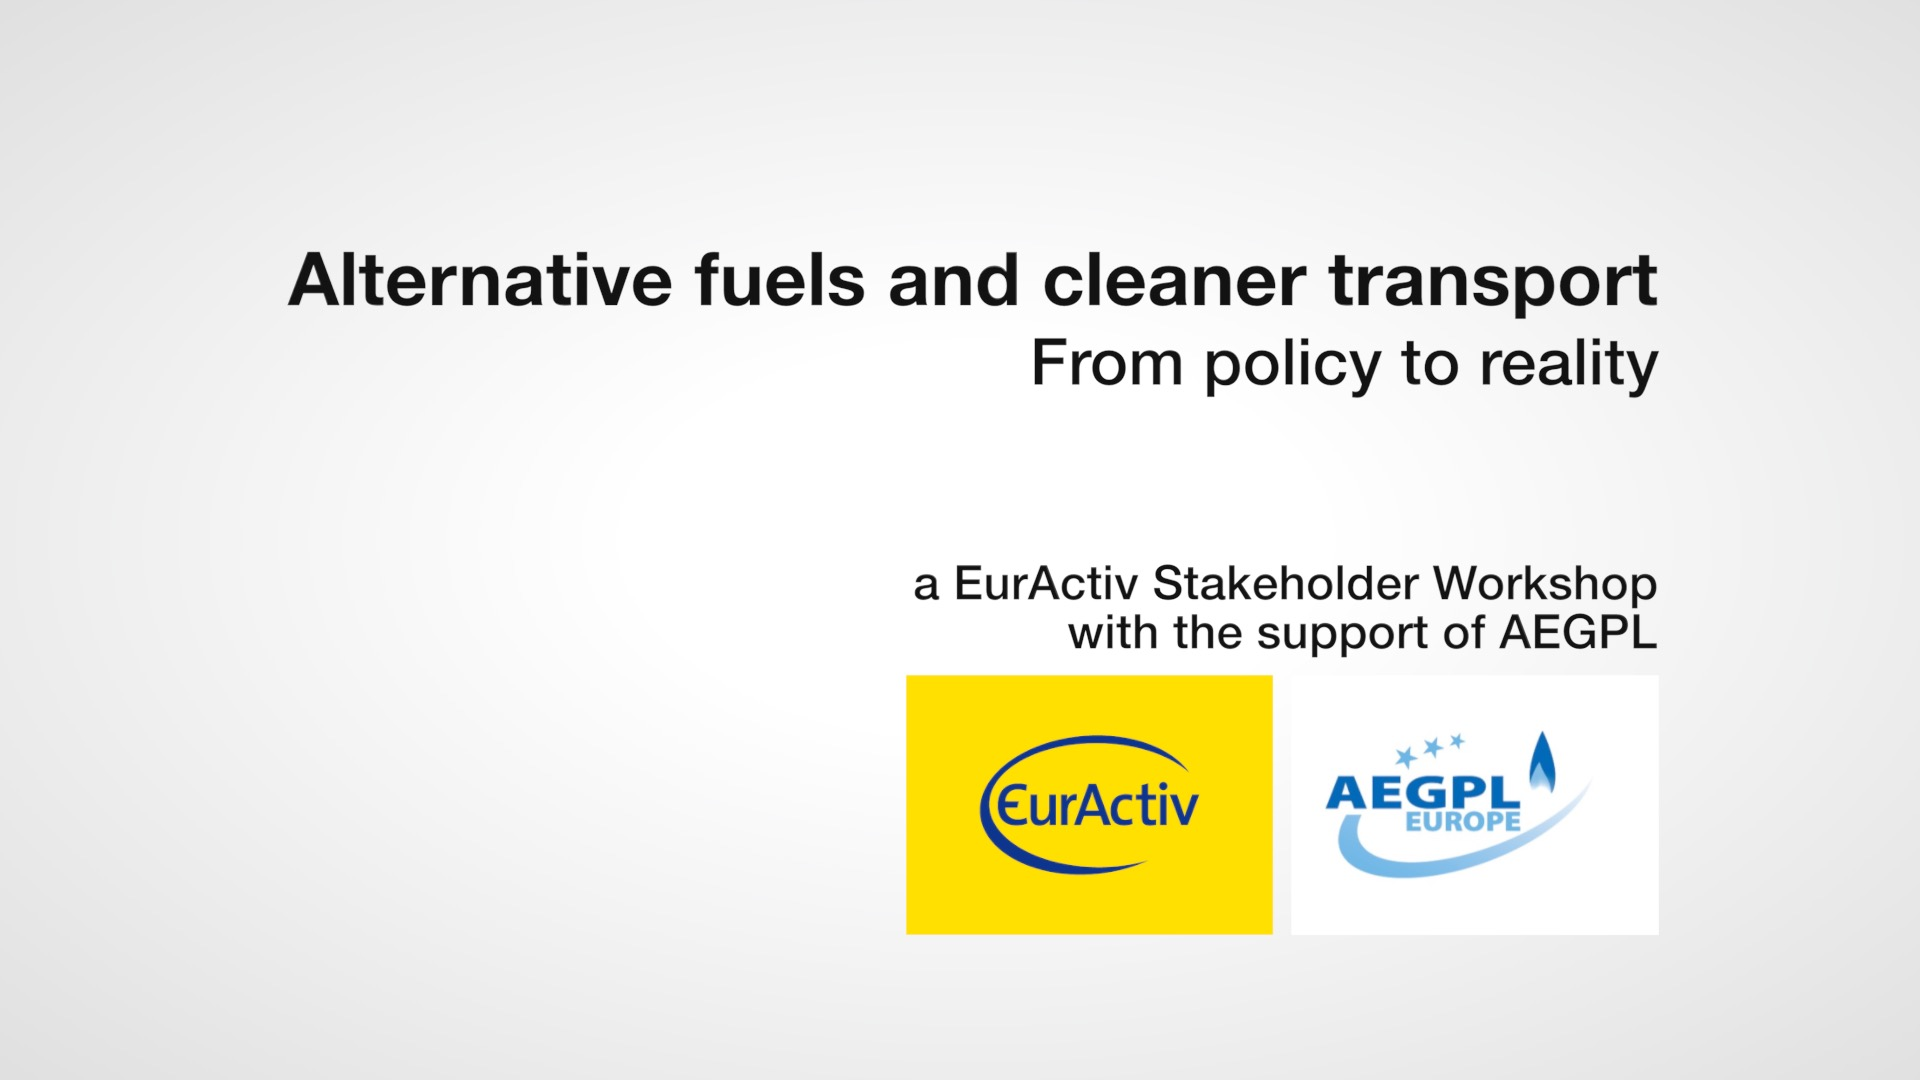 Alternative fuels and cleaner transport: From policy to reality